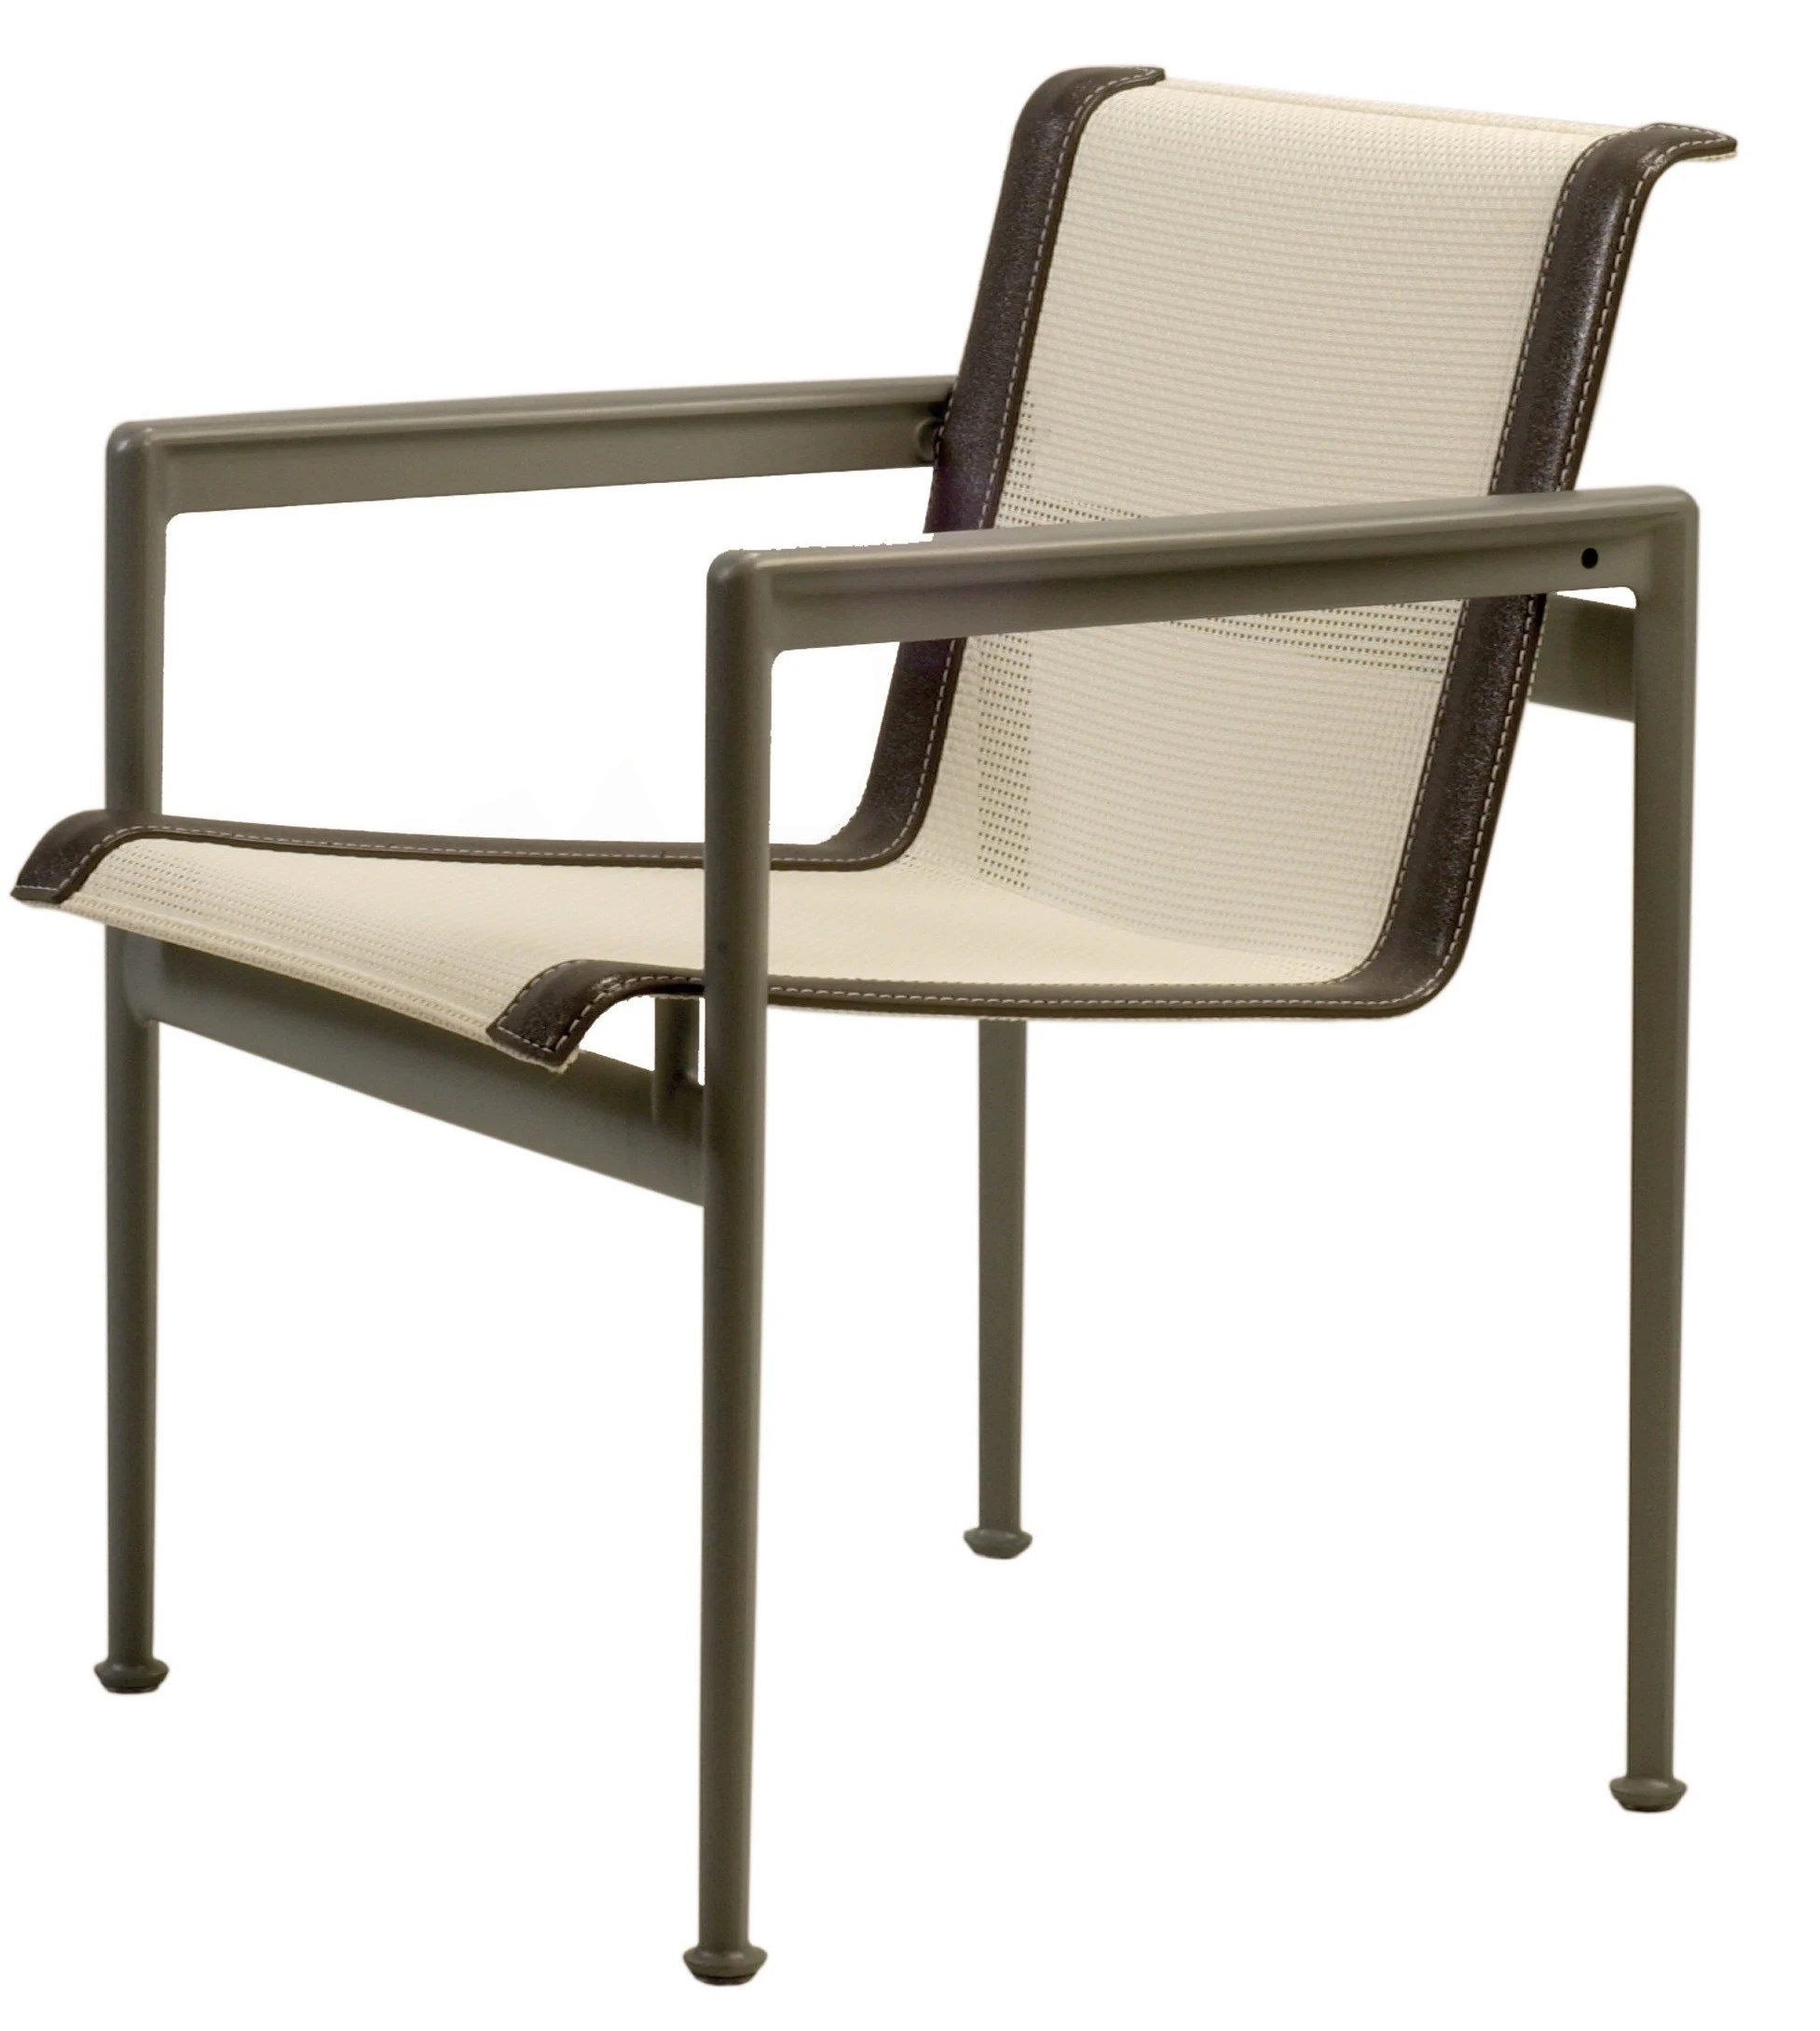 Standard Dining Chair Height Richard Schultz 1966 Collection 45h Standard Height Dining